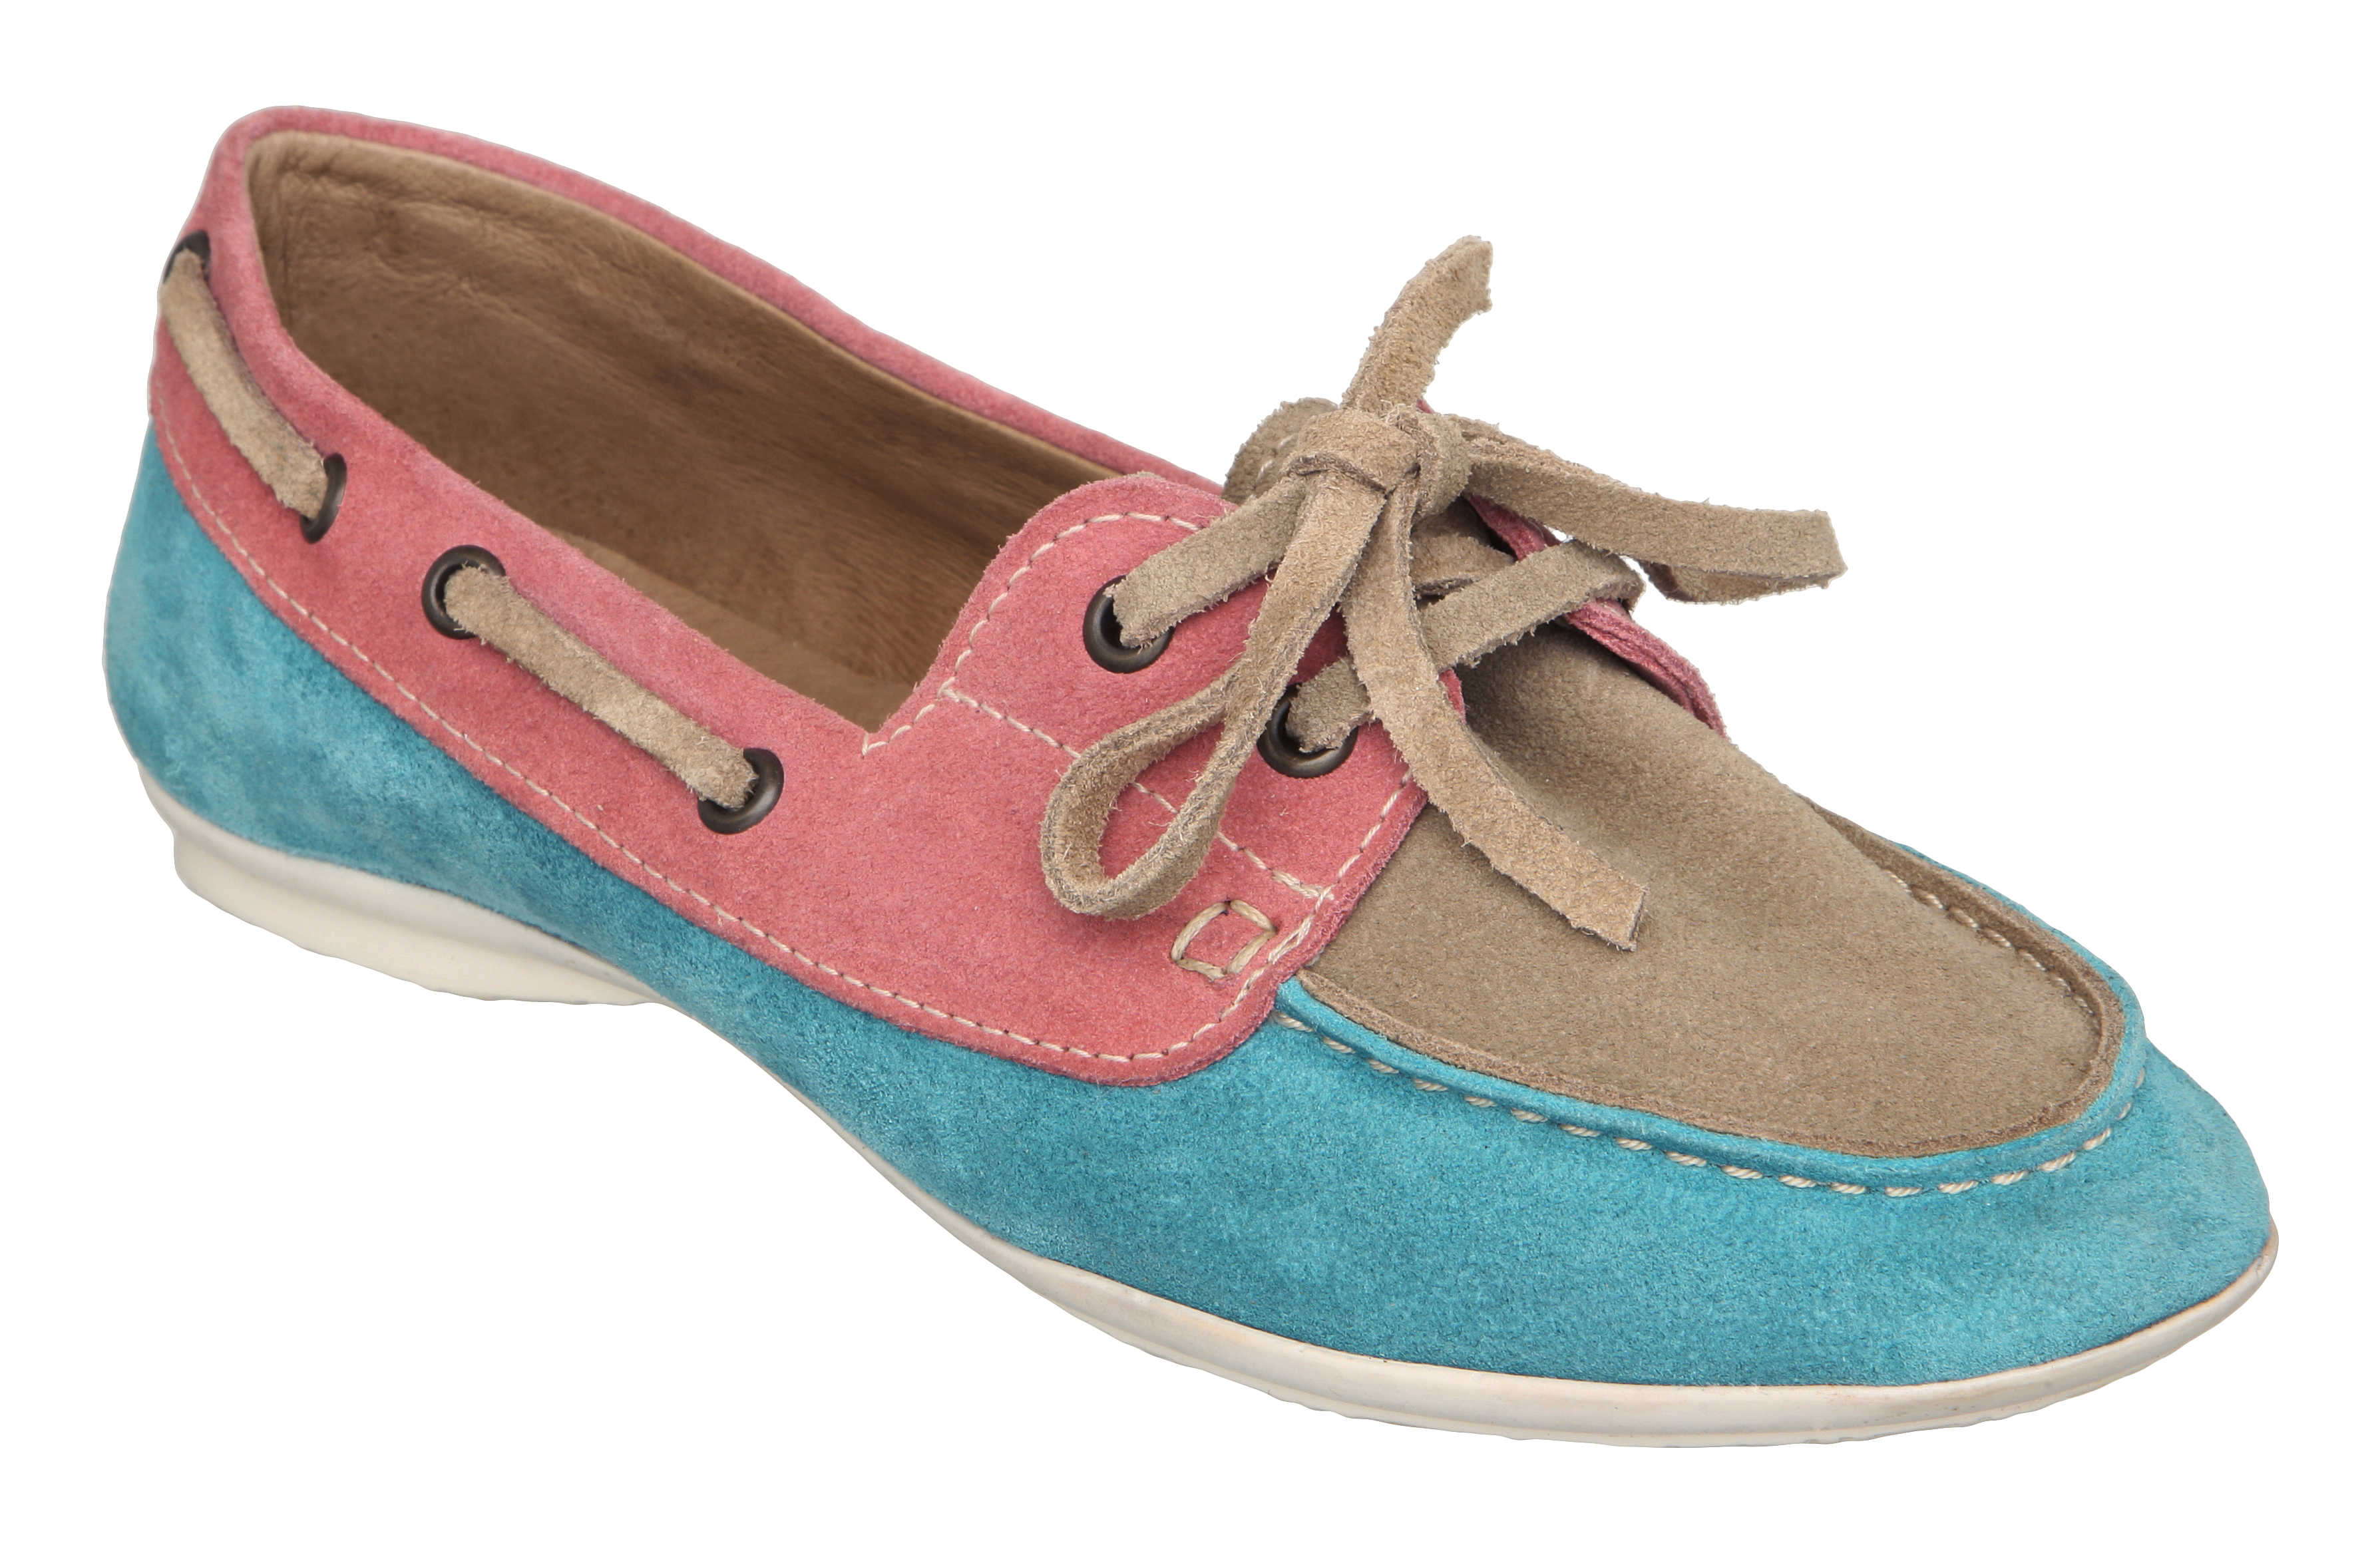 NEW-BERTIE-LADIES-MERCURIO-MULTI-COLOURED-SUEDE-LOAFERS-MOCCASIN-SHOES-SIZE-3-8